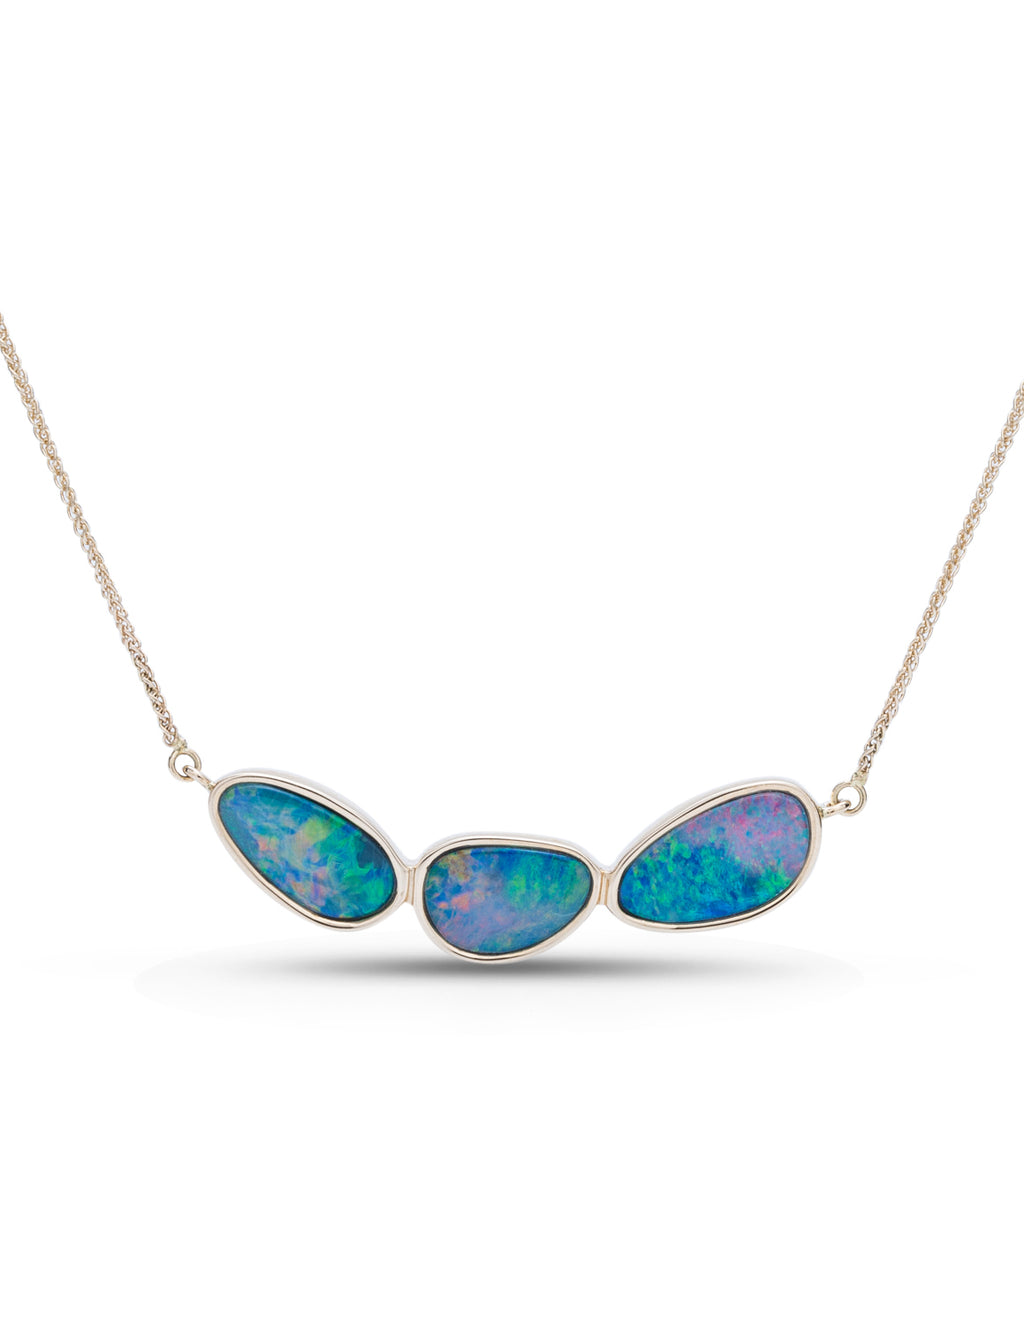 3 Bezel Set Australian Opal East/West Necklace